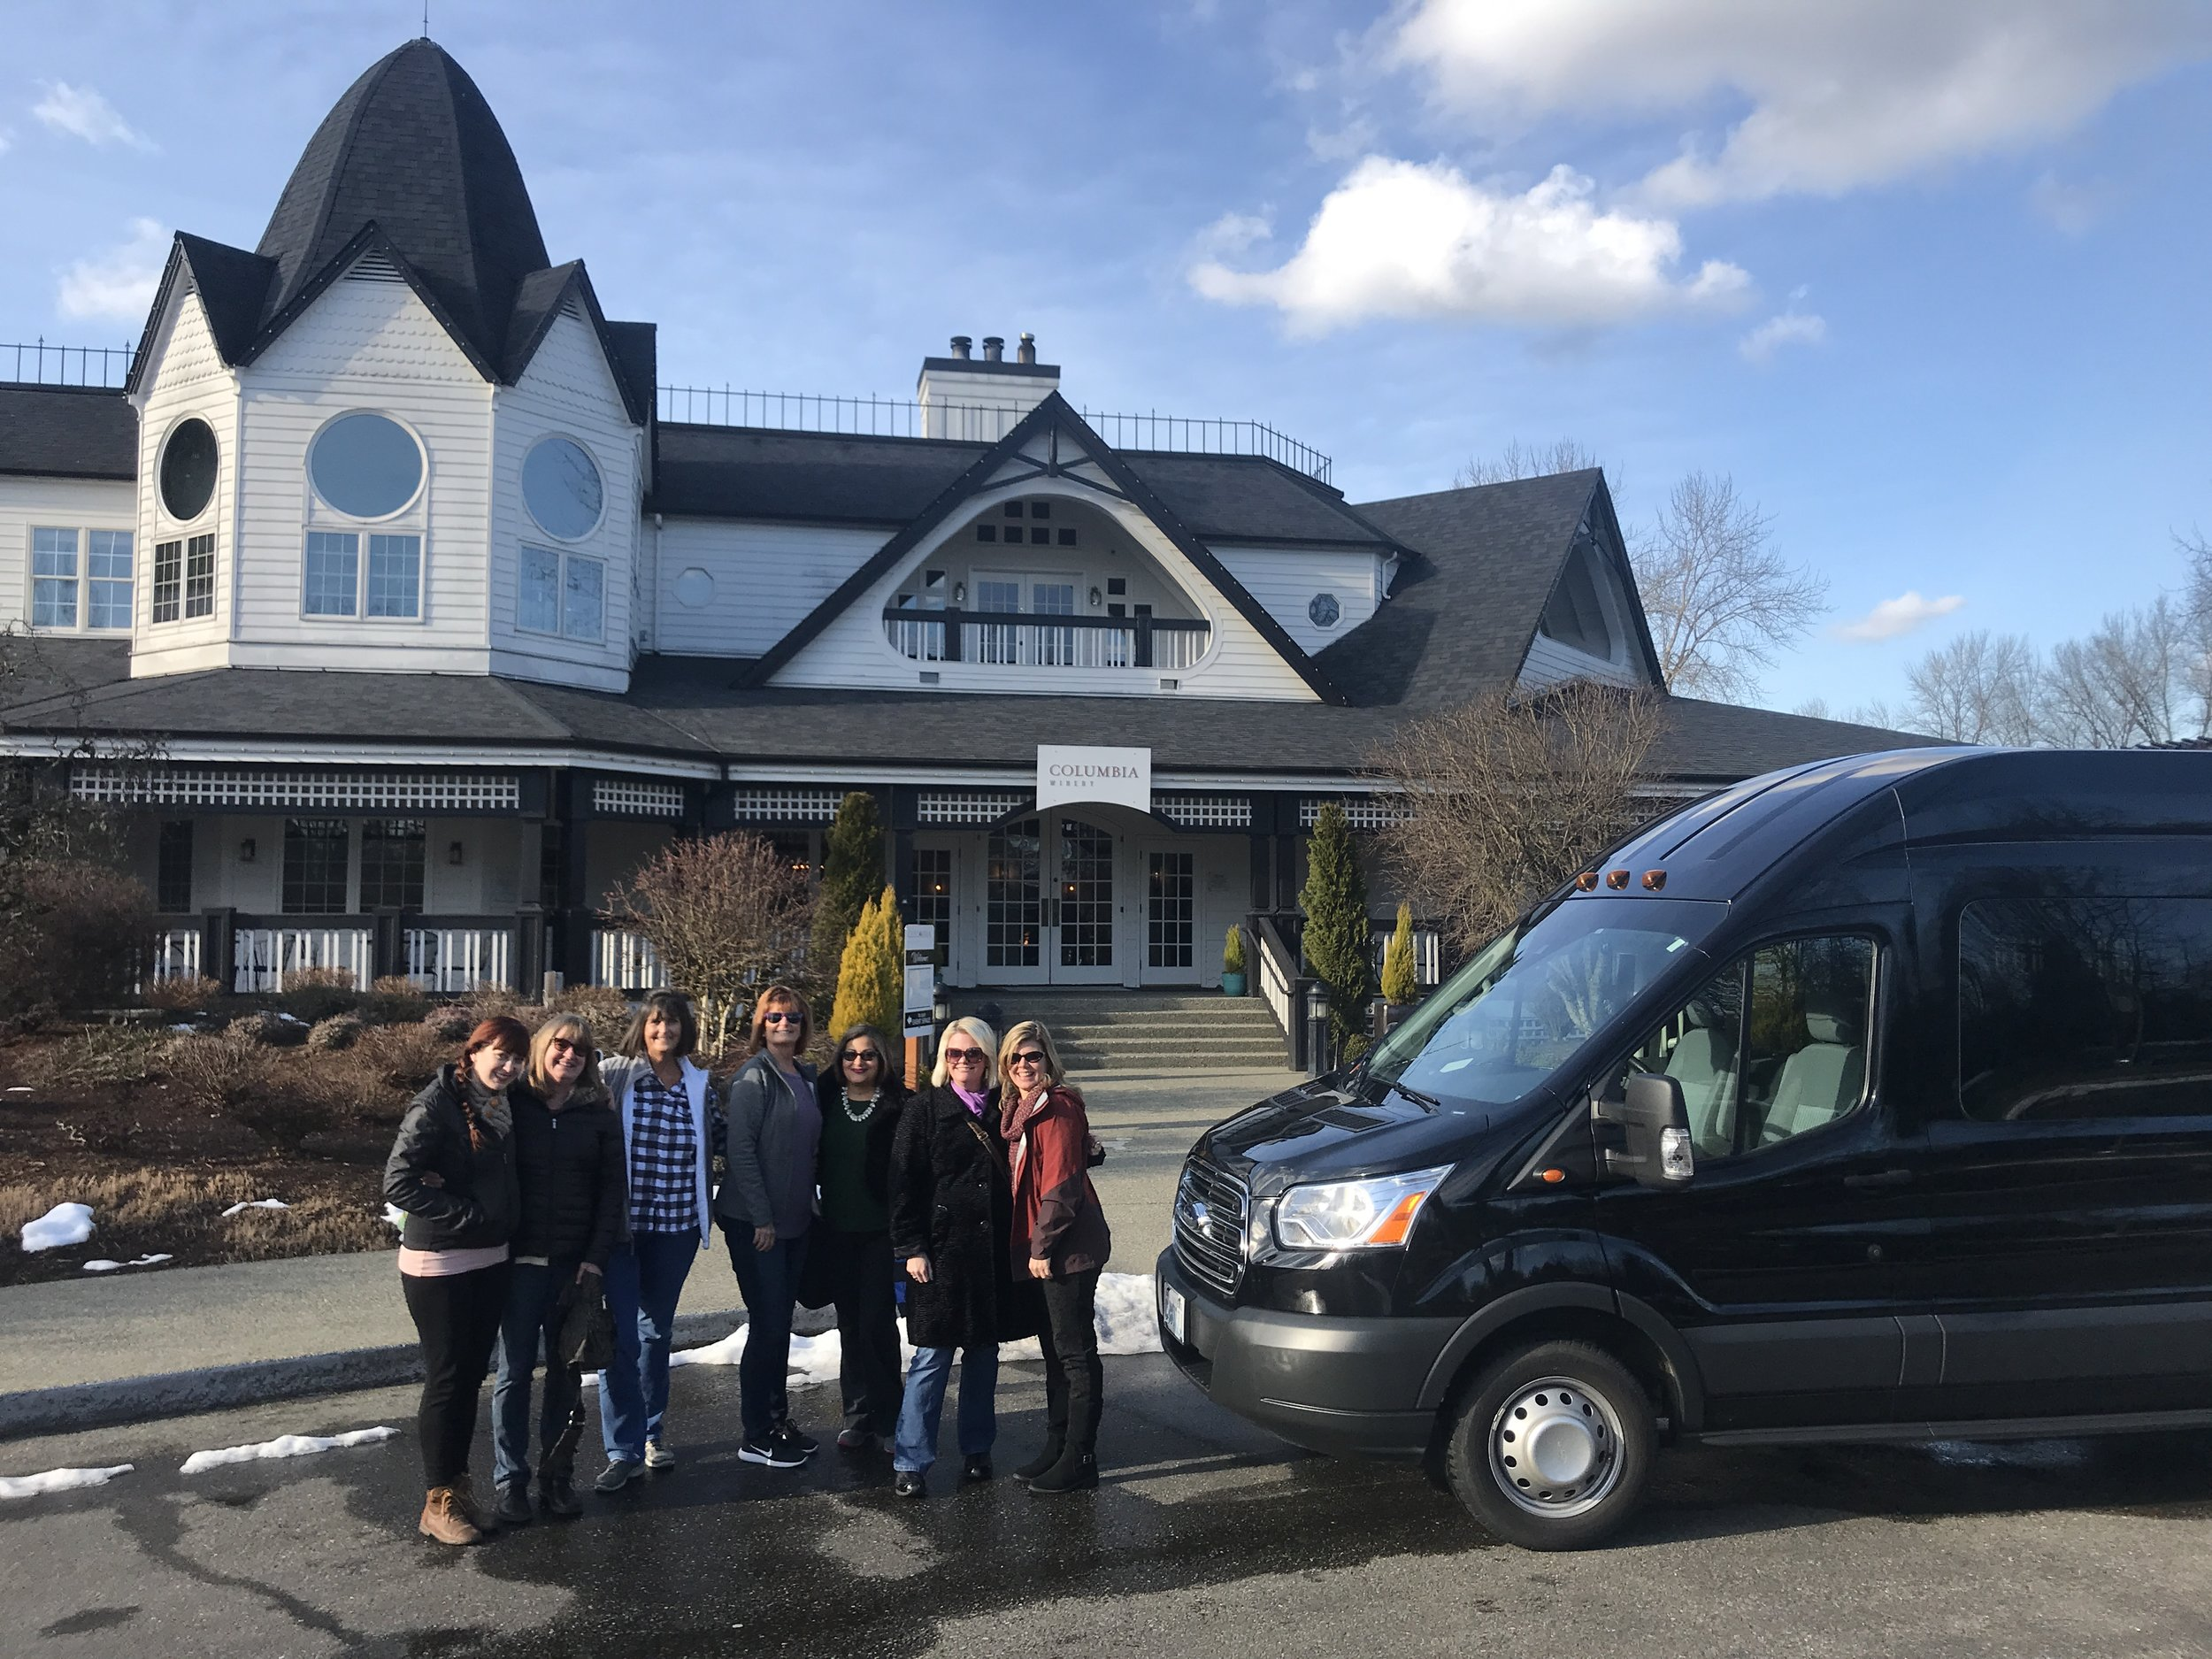 """""""Wonderful Excursion to Woodinville""""    """"Michael from Nature Nuts took great care of my small group! We had lunch, wine tasting and shopping in Woodinville, WA. He gave us great recommendations, offered assistance and was so flexible with our itinerary. Thank You!""""    -Allissa, Boise, ID"""